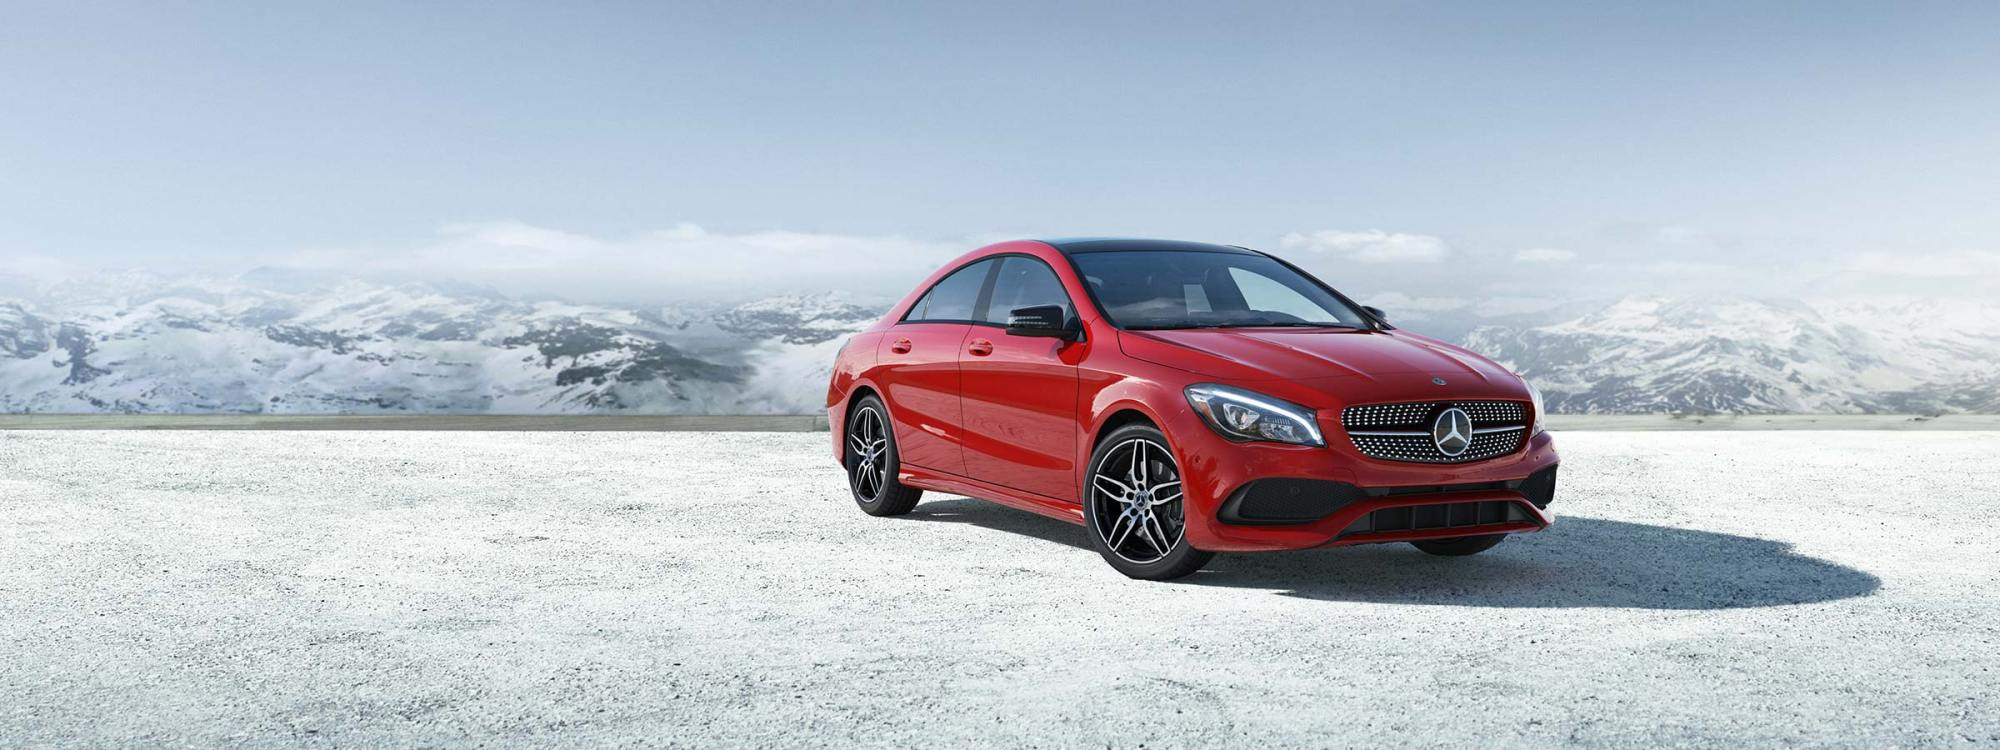 hight resolution of a red 2019 cla 250 coupe parked in front of snow covered mountains